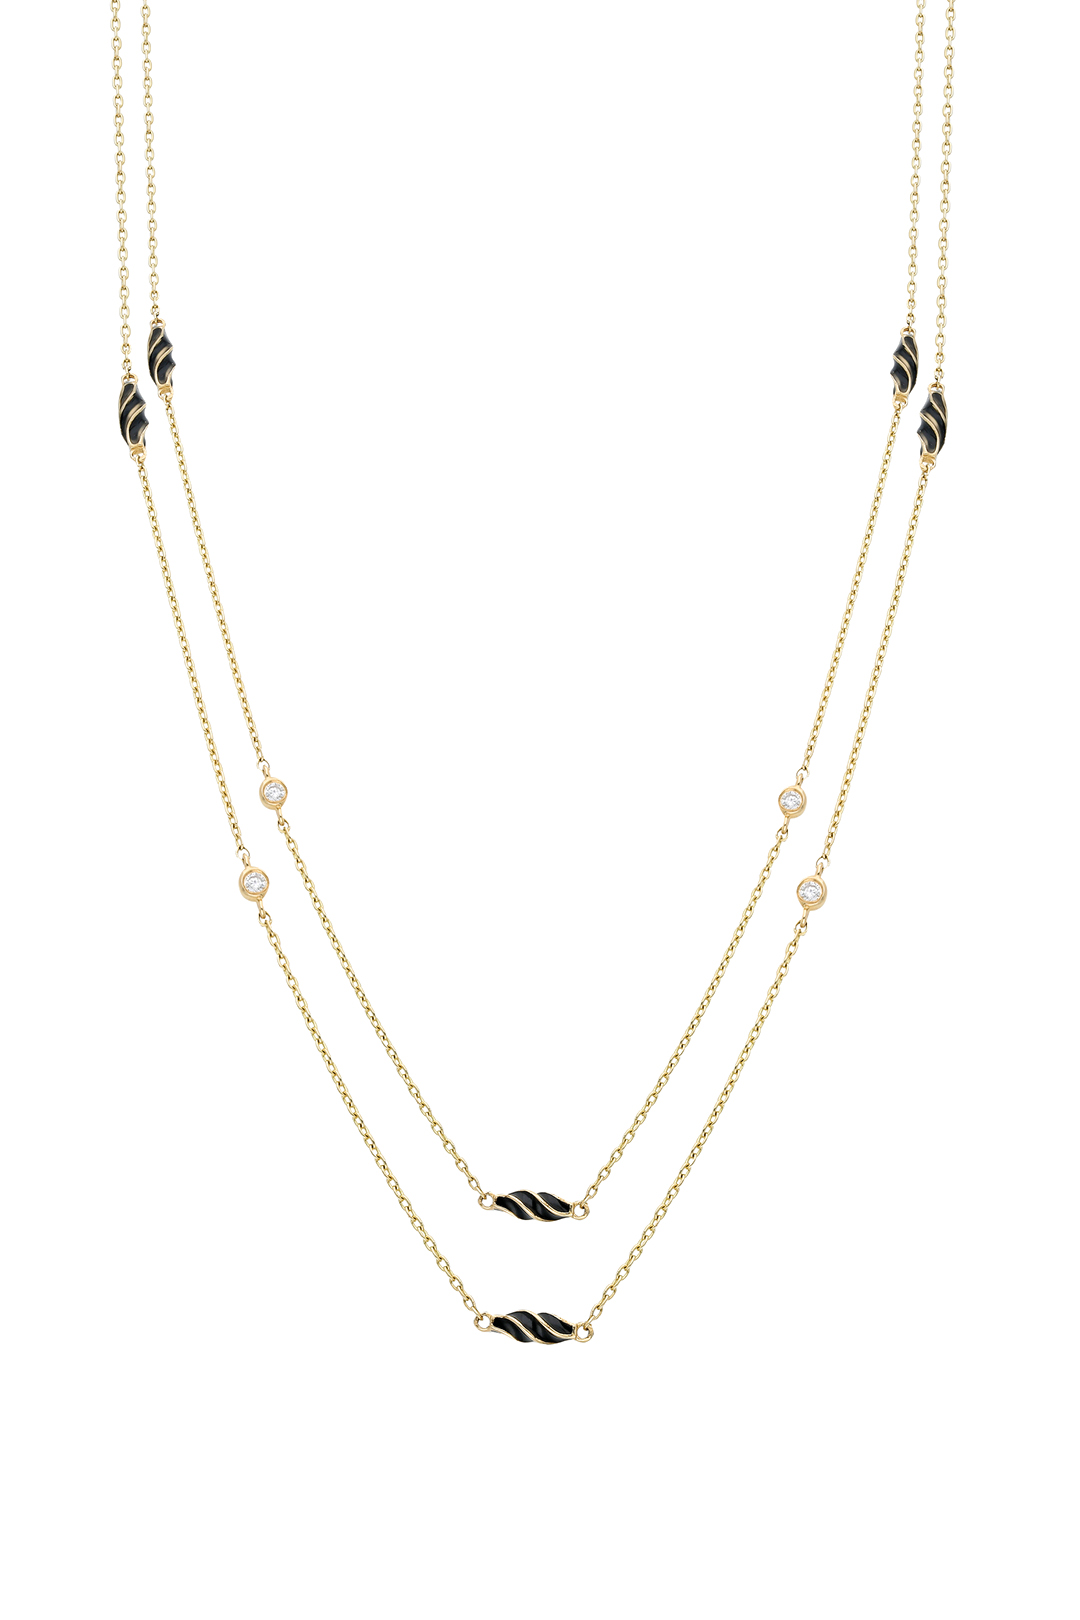 BLACK ENAMEL AND DIAMOND NECKLACE